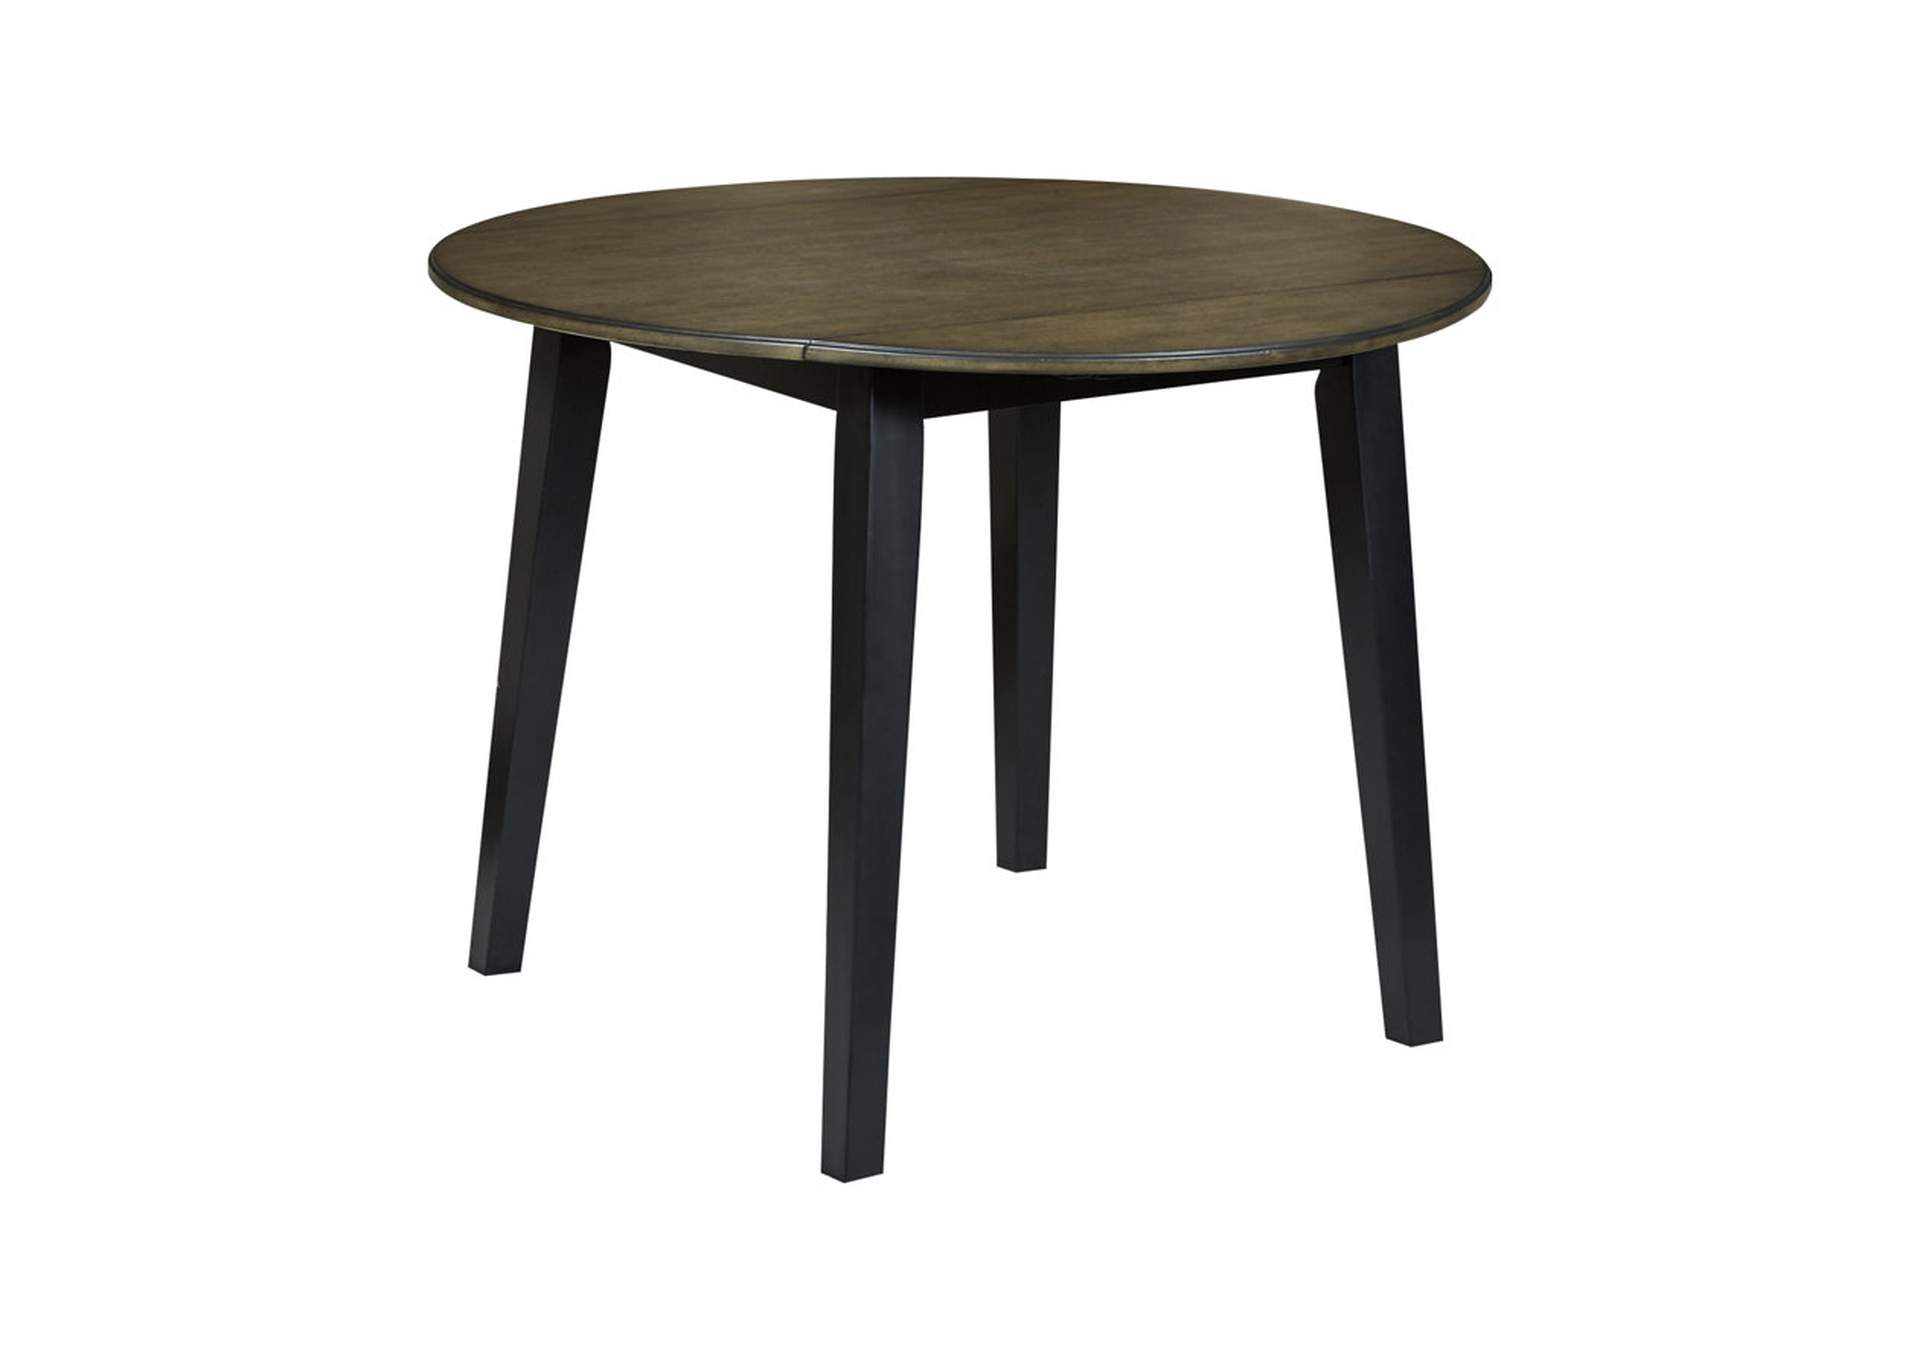 Froshburg Grayish Brown/Black Round Drop Leaf Table,Signature Design By Ashley